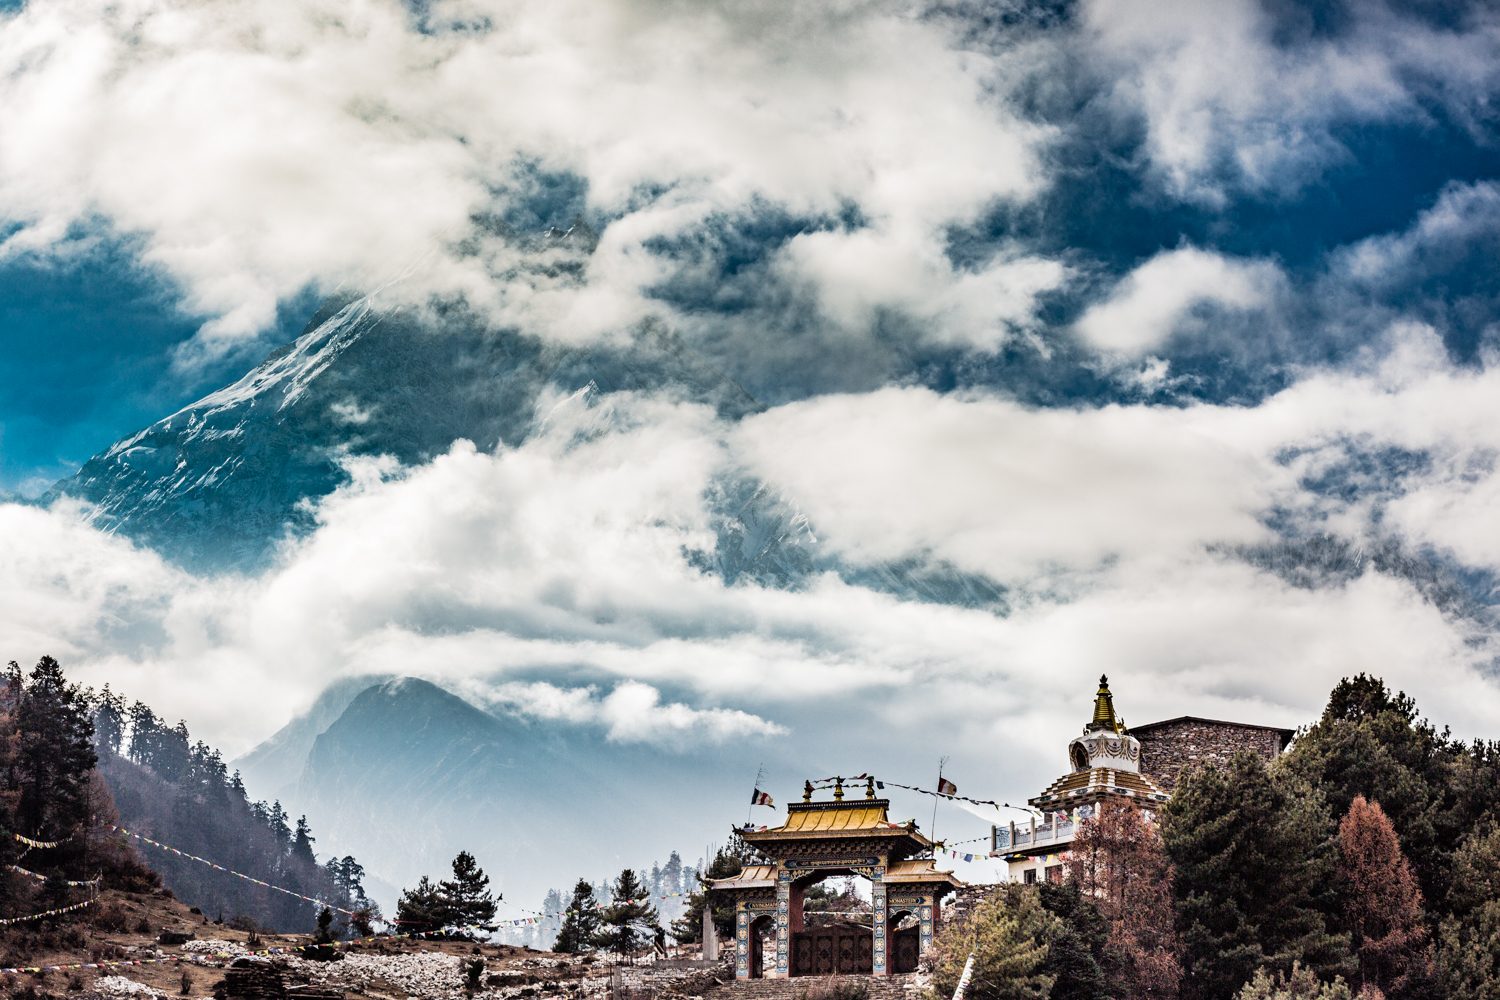 Ribum, a Buddhist monastery, is perched against the backdrop of Manaslu. Most of the ethnicities in the Manaslu Conservation are Buddhist.